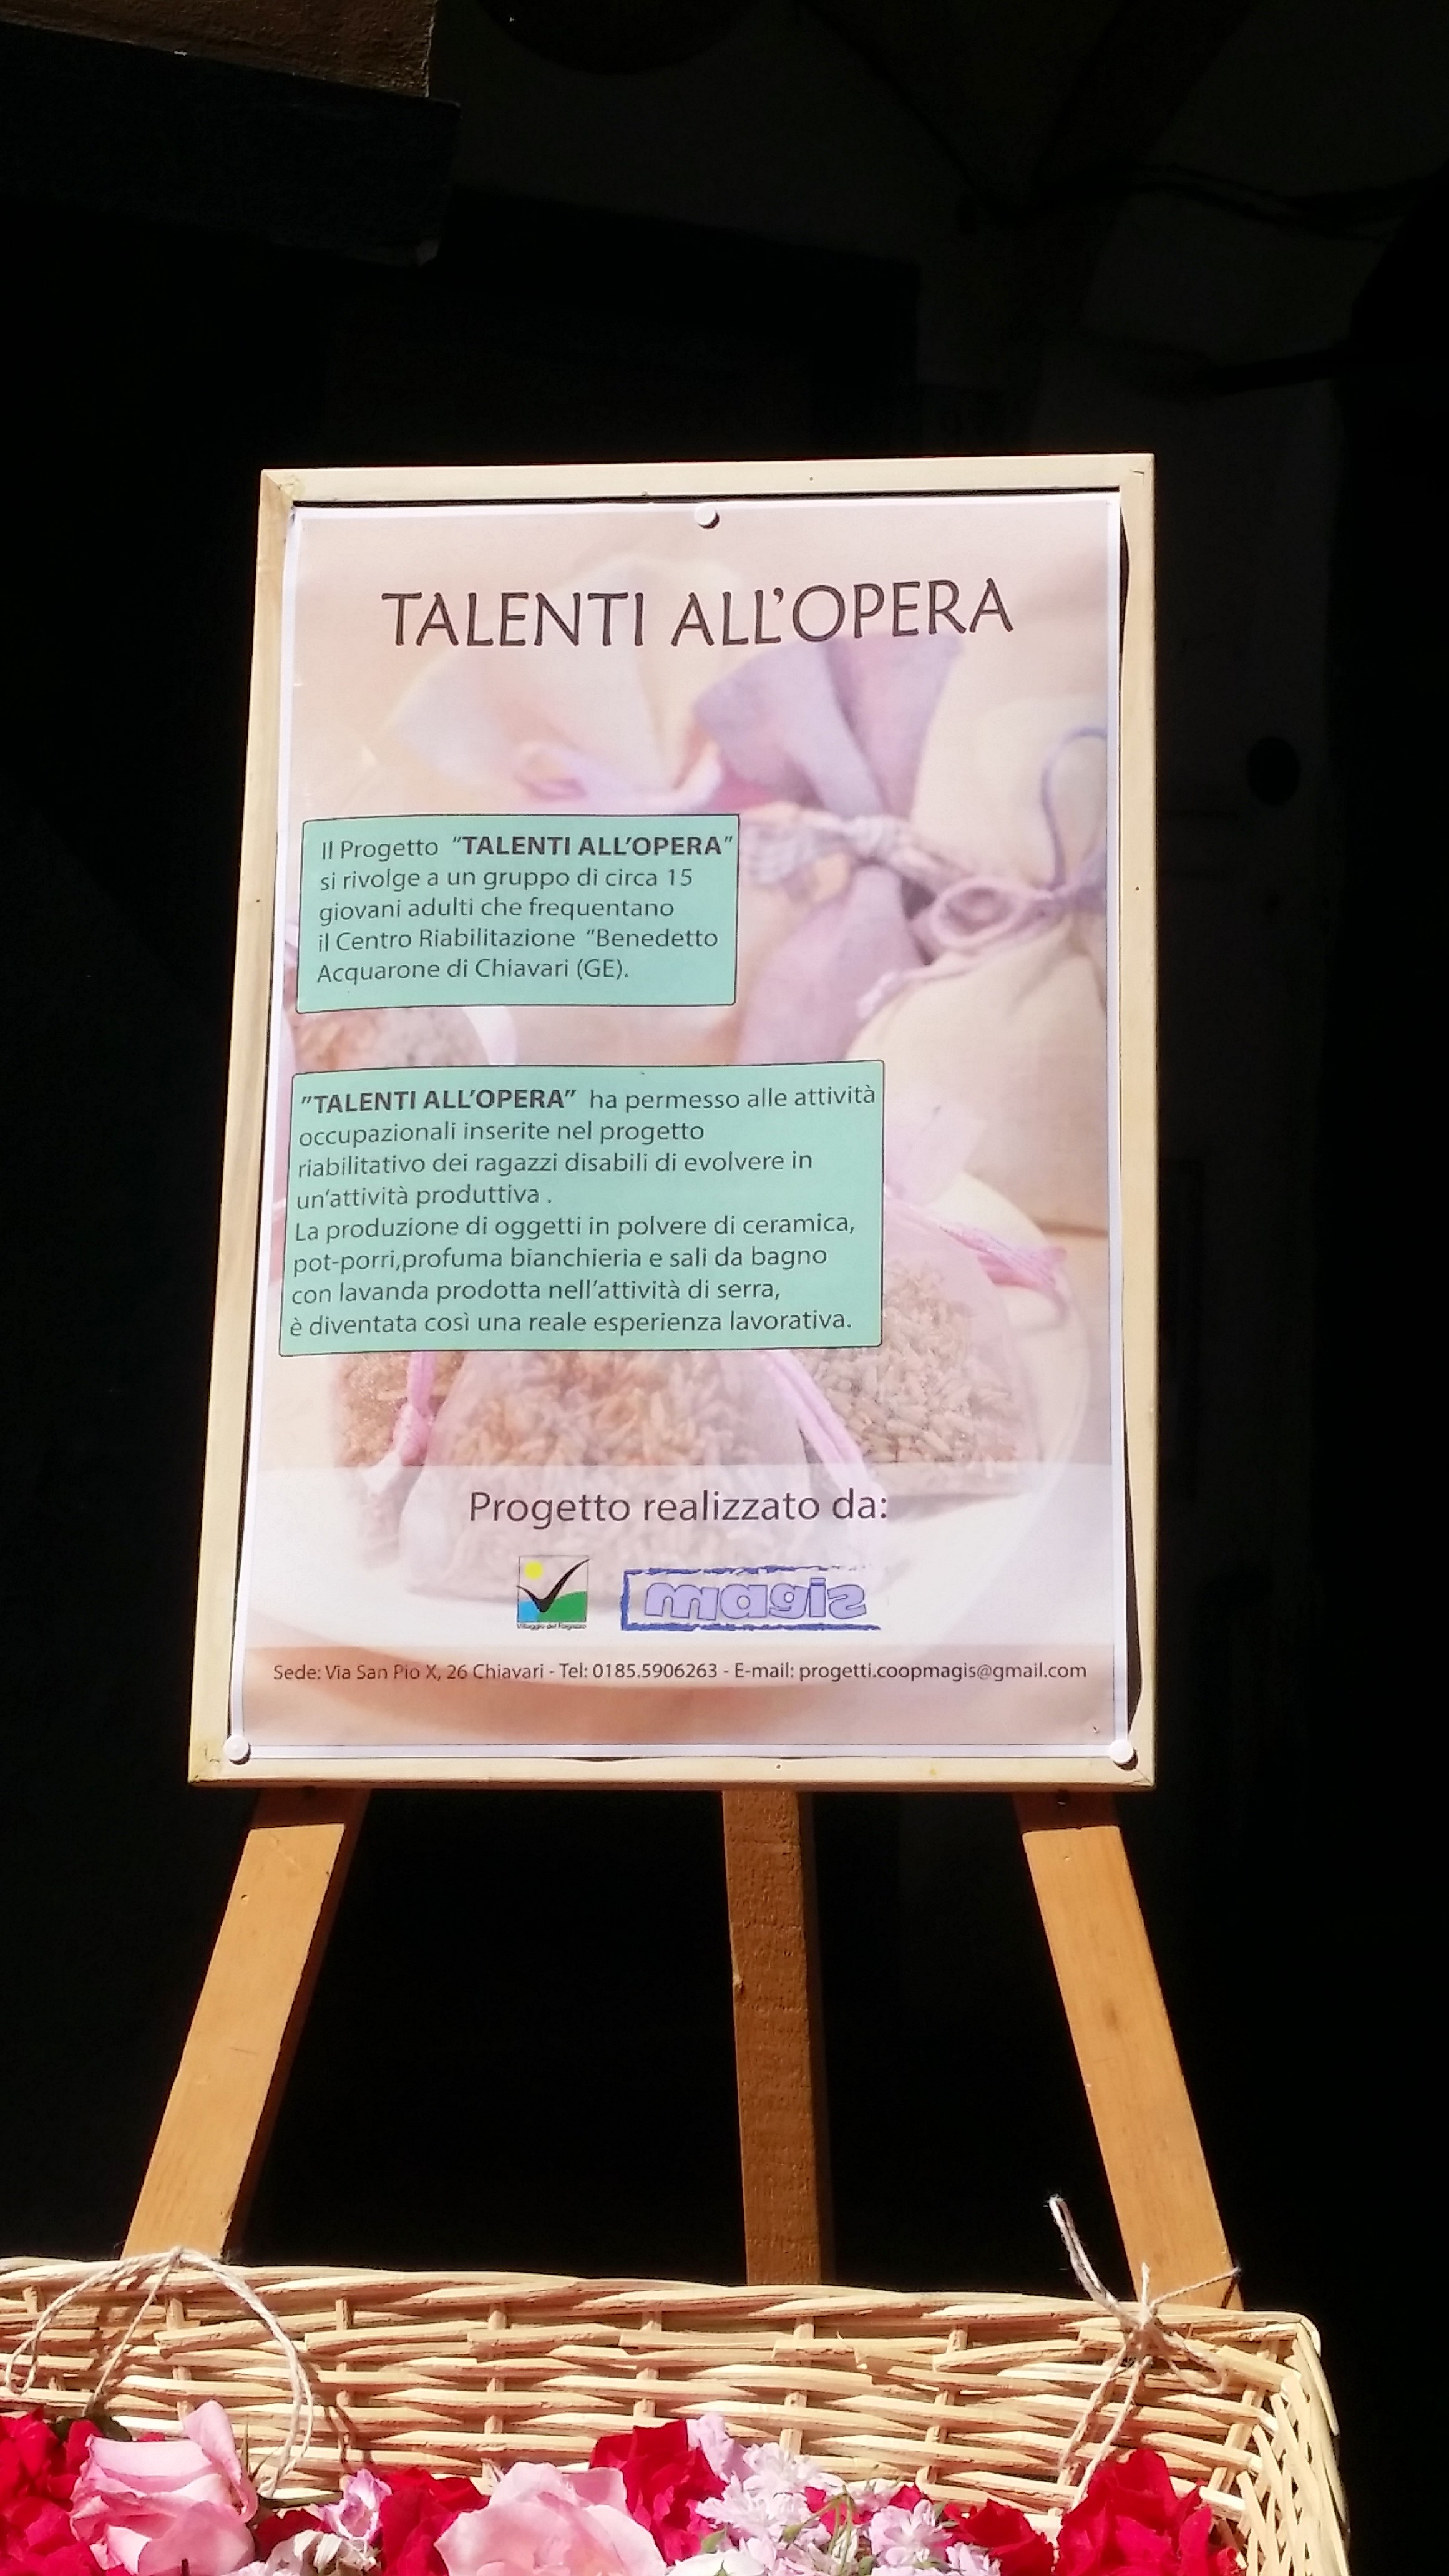 Area Disabili Talenti all'opera - Chiavari in fiore 2015